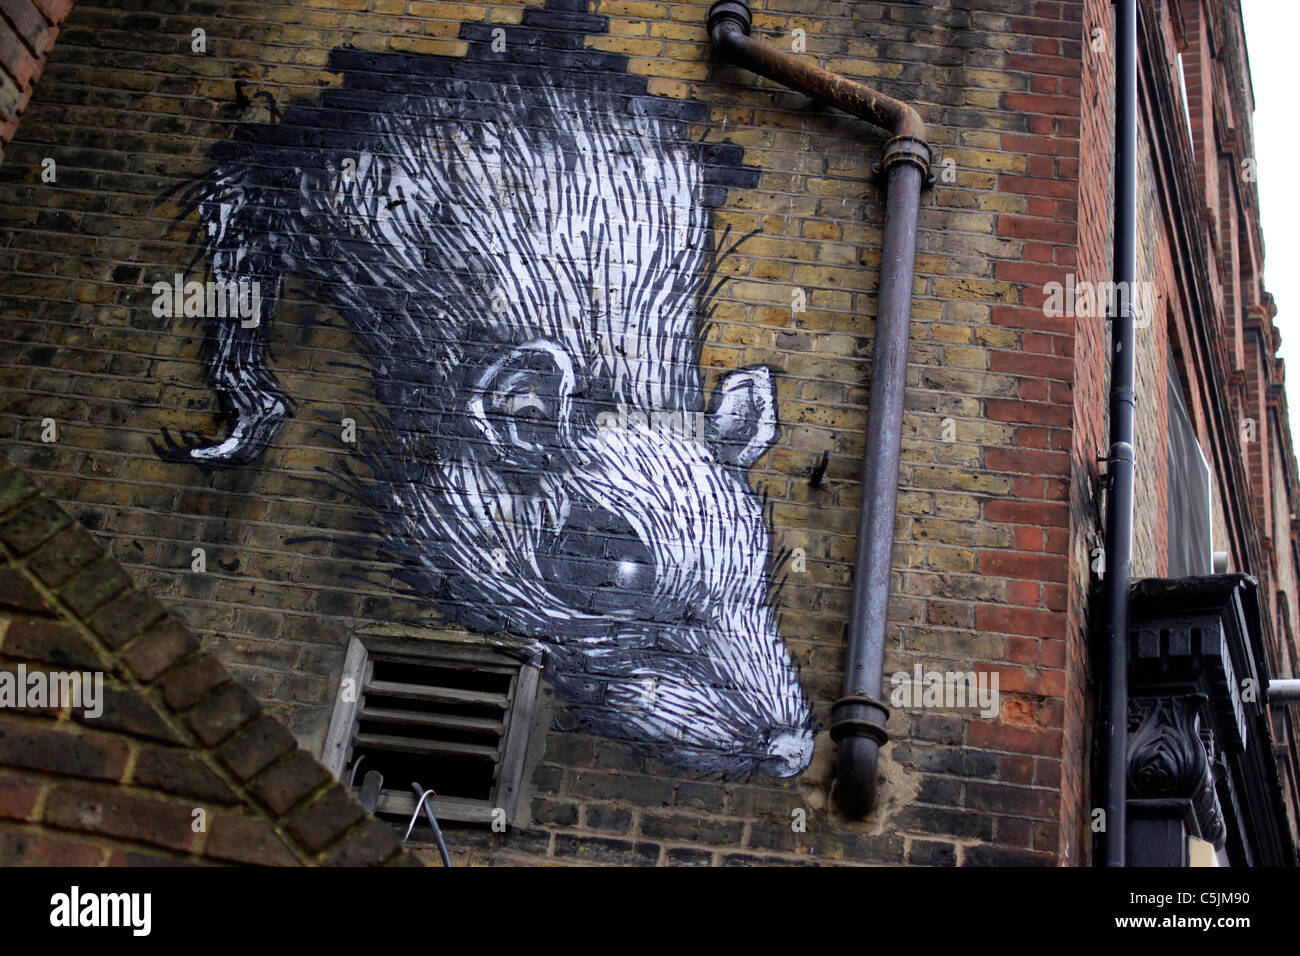 Giant rat painted onto the side of a building near Aldgate, London - Stock Image